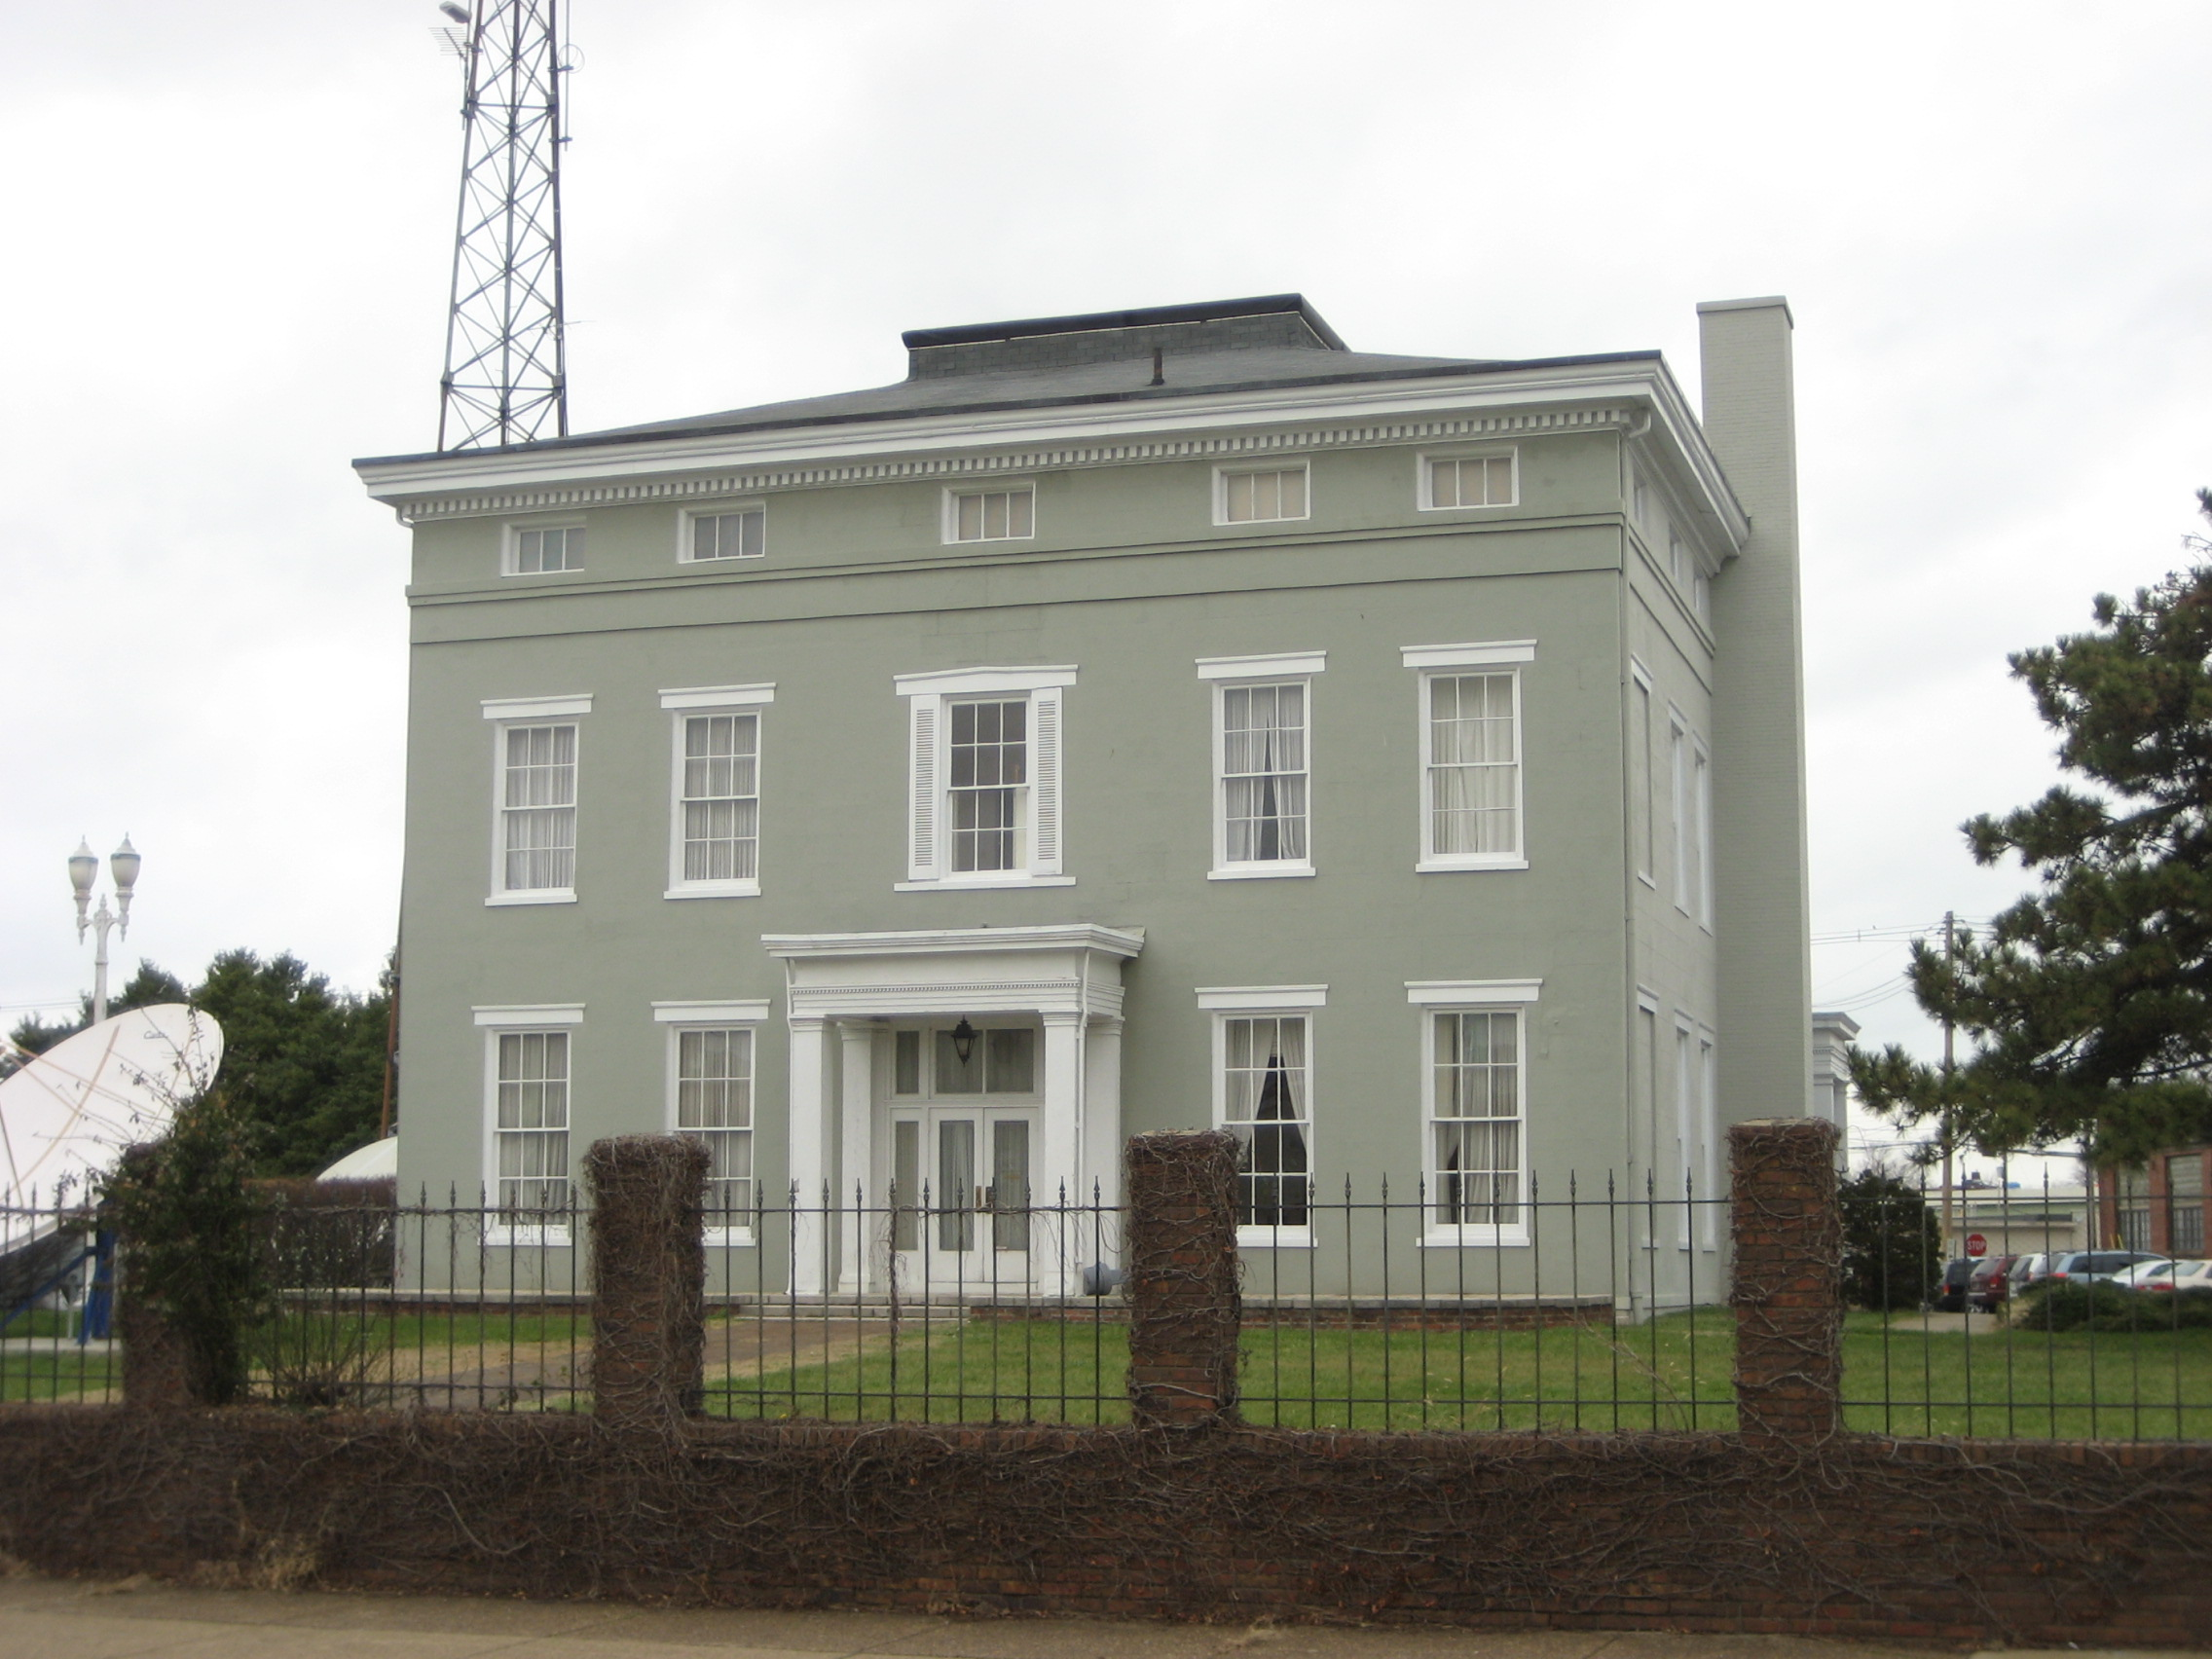 Carpenter House